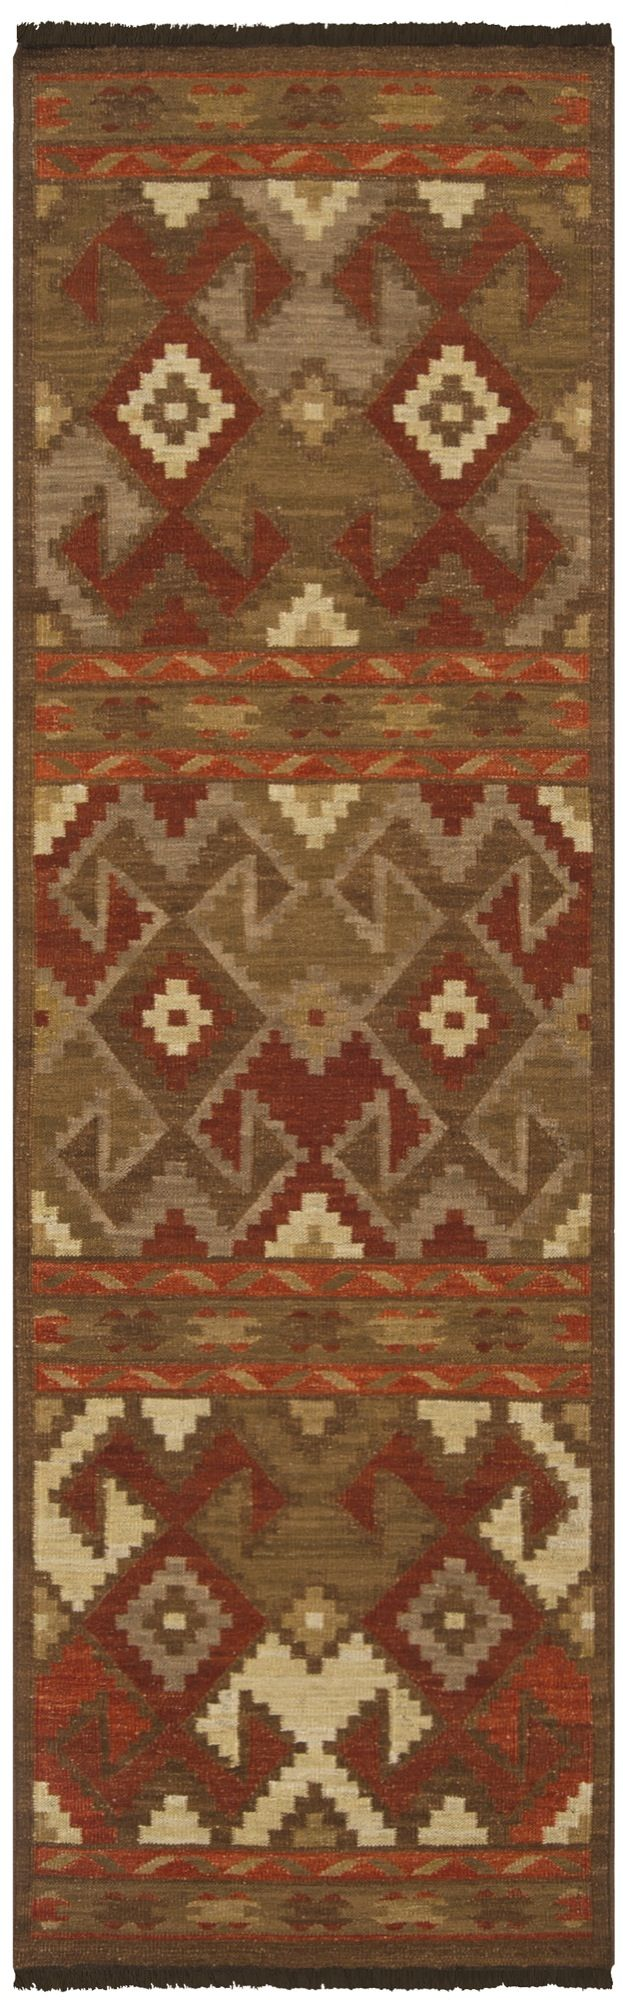 surya jewel tone ii southwestern/lodge area rug collection